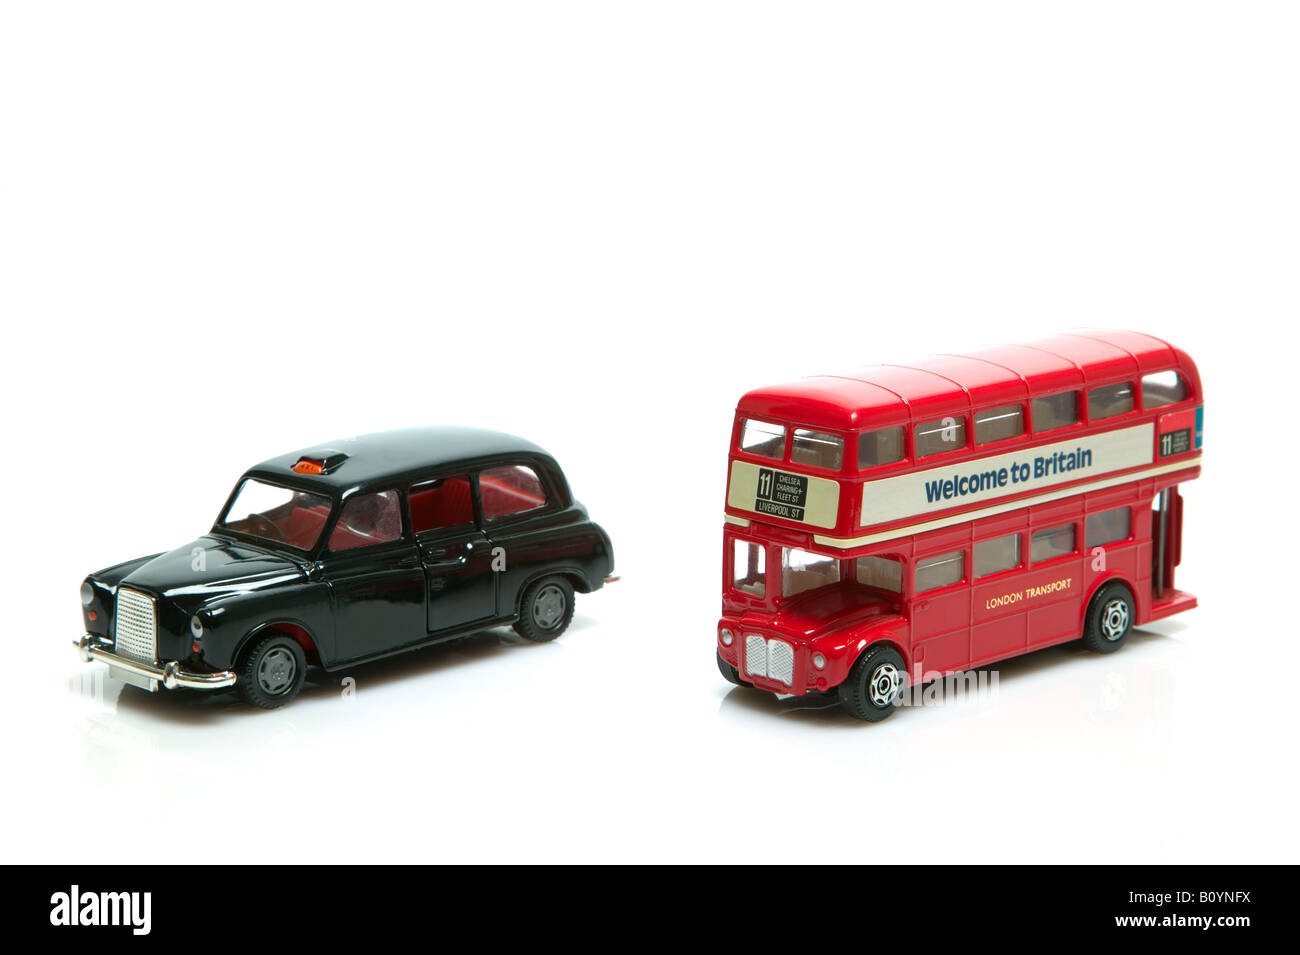 London Taxi and red double decker bus toys isolated on a white background - Stock Image